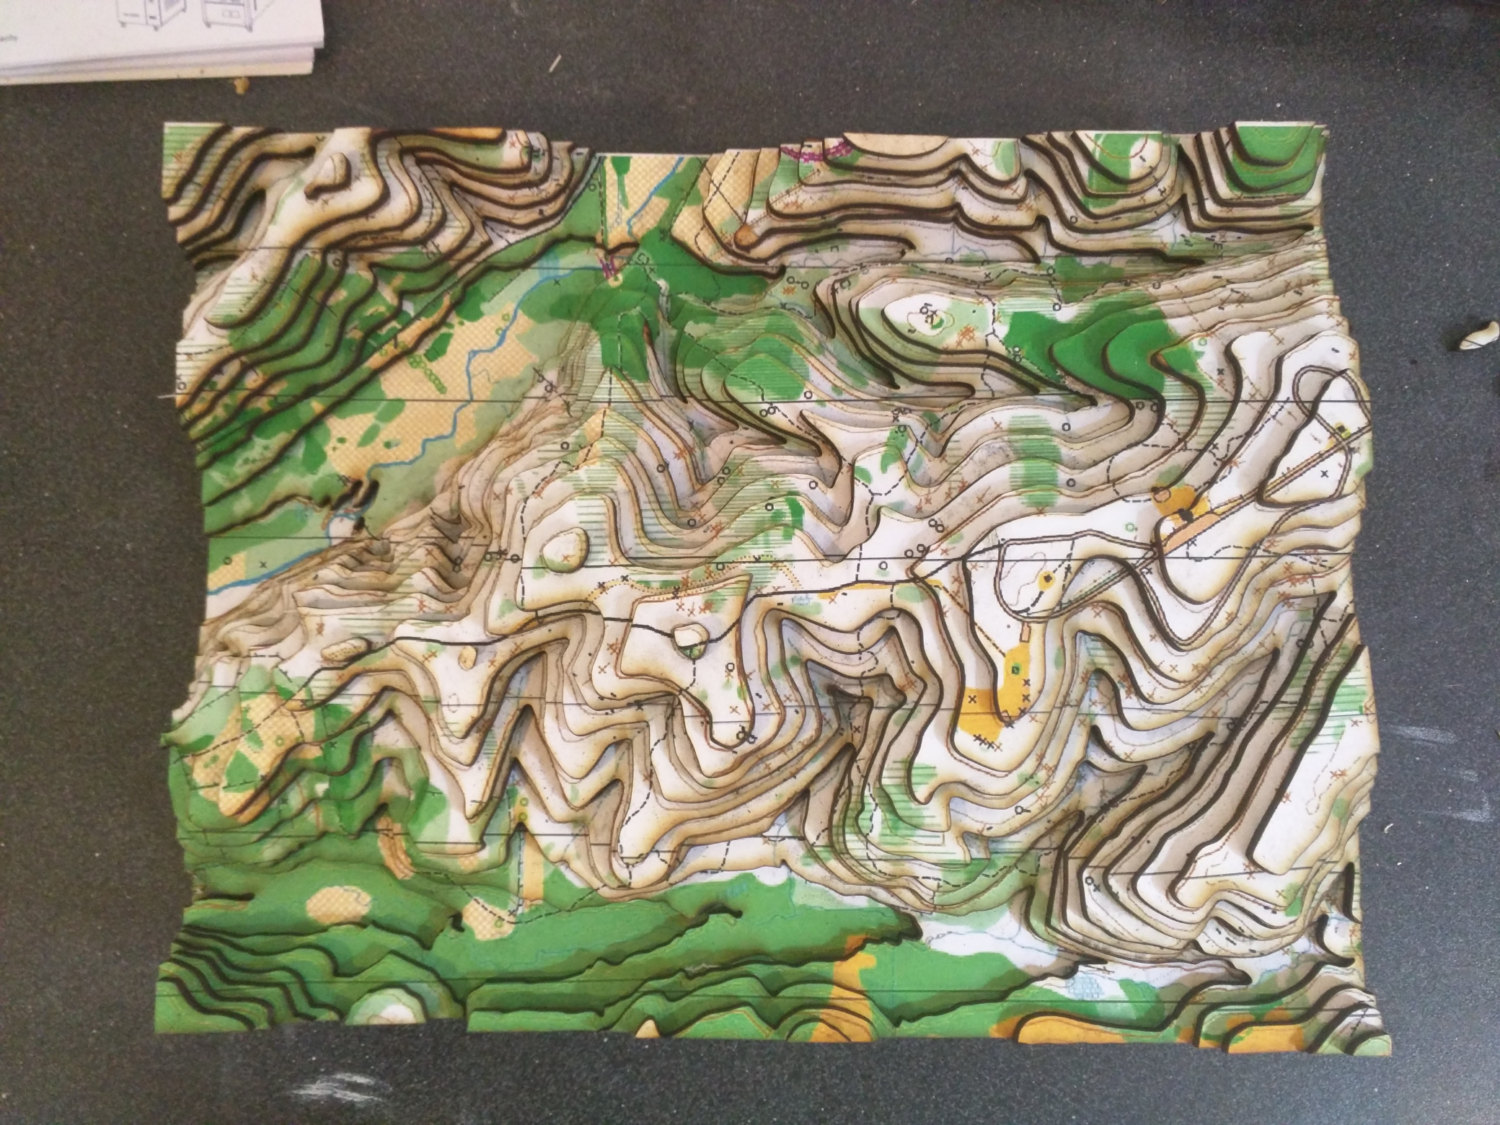 3D Orienteering Map - Wooden Accurate Topographical Map - Cartographic Map of a Virginian Valley